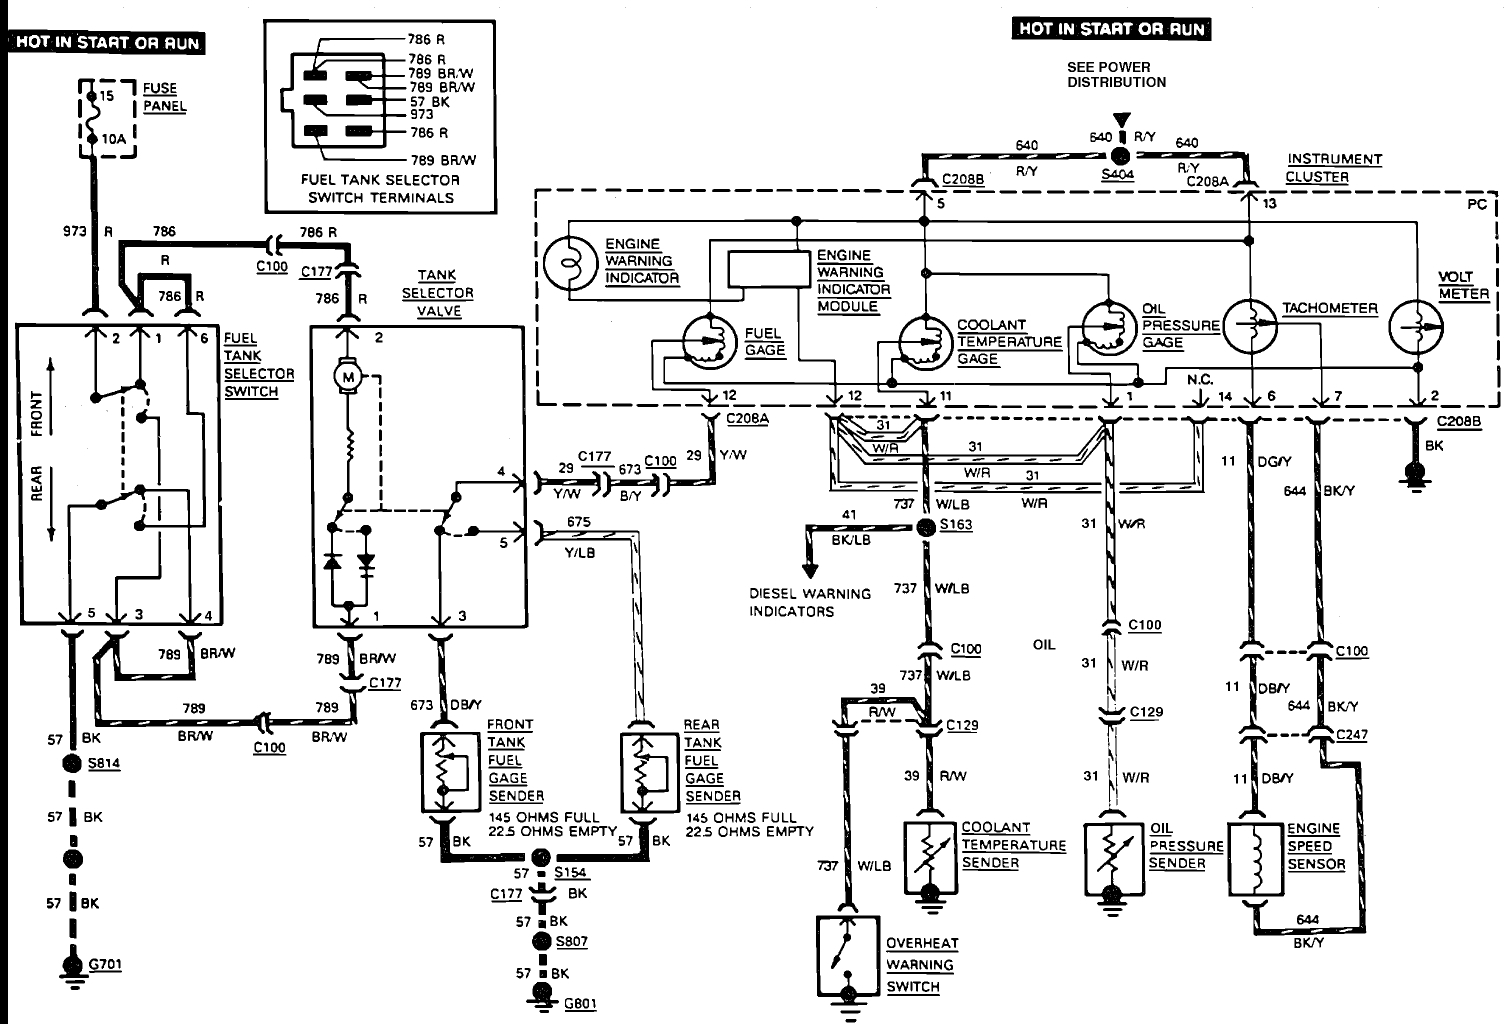 hight resolution of 95 ford f150 ignition wiring diagram 1989 ford f150 ignition wiring diagram 2005 ford f150